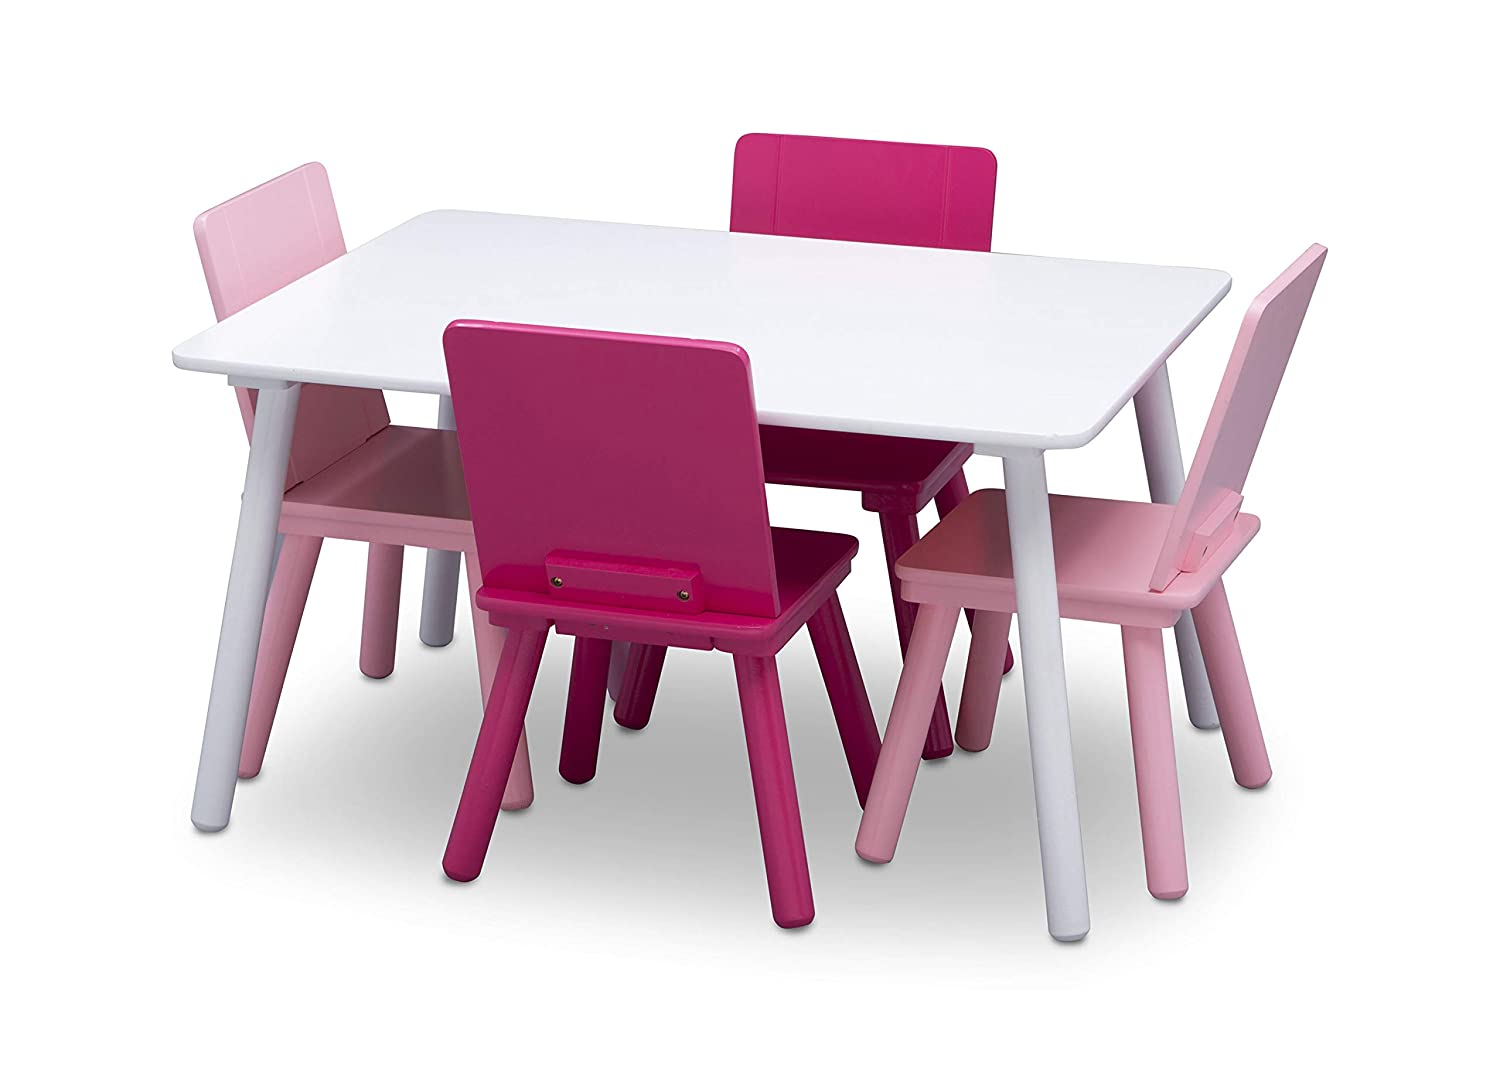 Amazon Com Delta Children Kids Table And Chair Set 4 Chairs Included Ideal For Arts Crafts Snack Time Homeschooling Homework More White Pink Baby